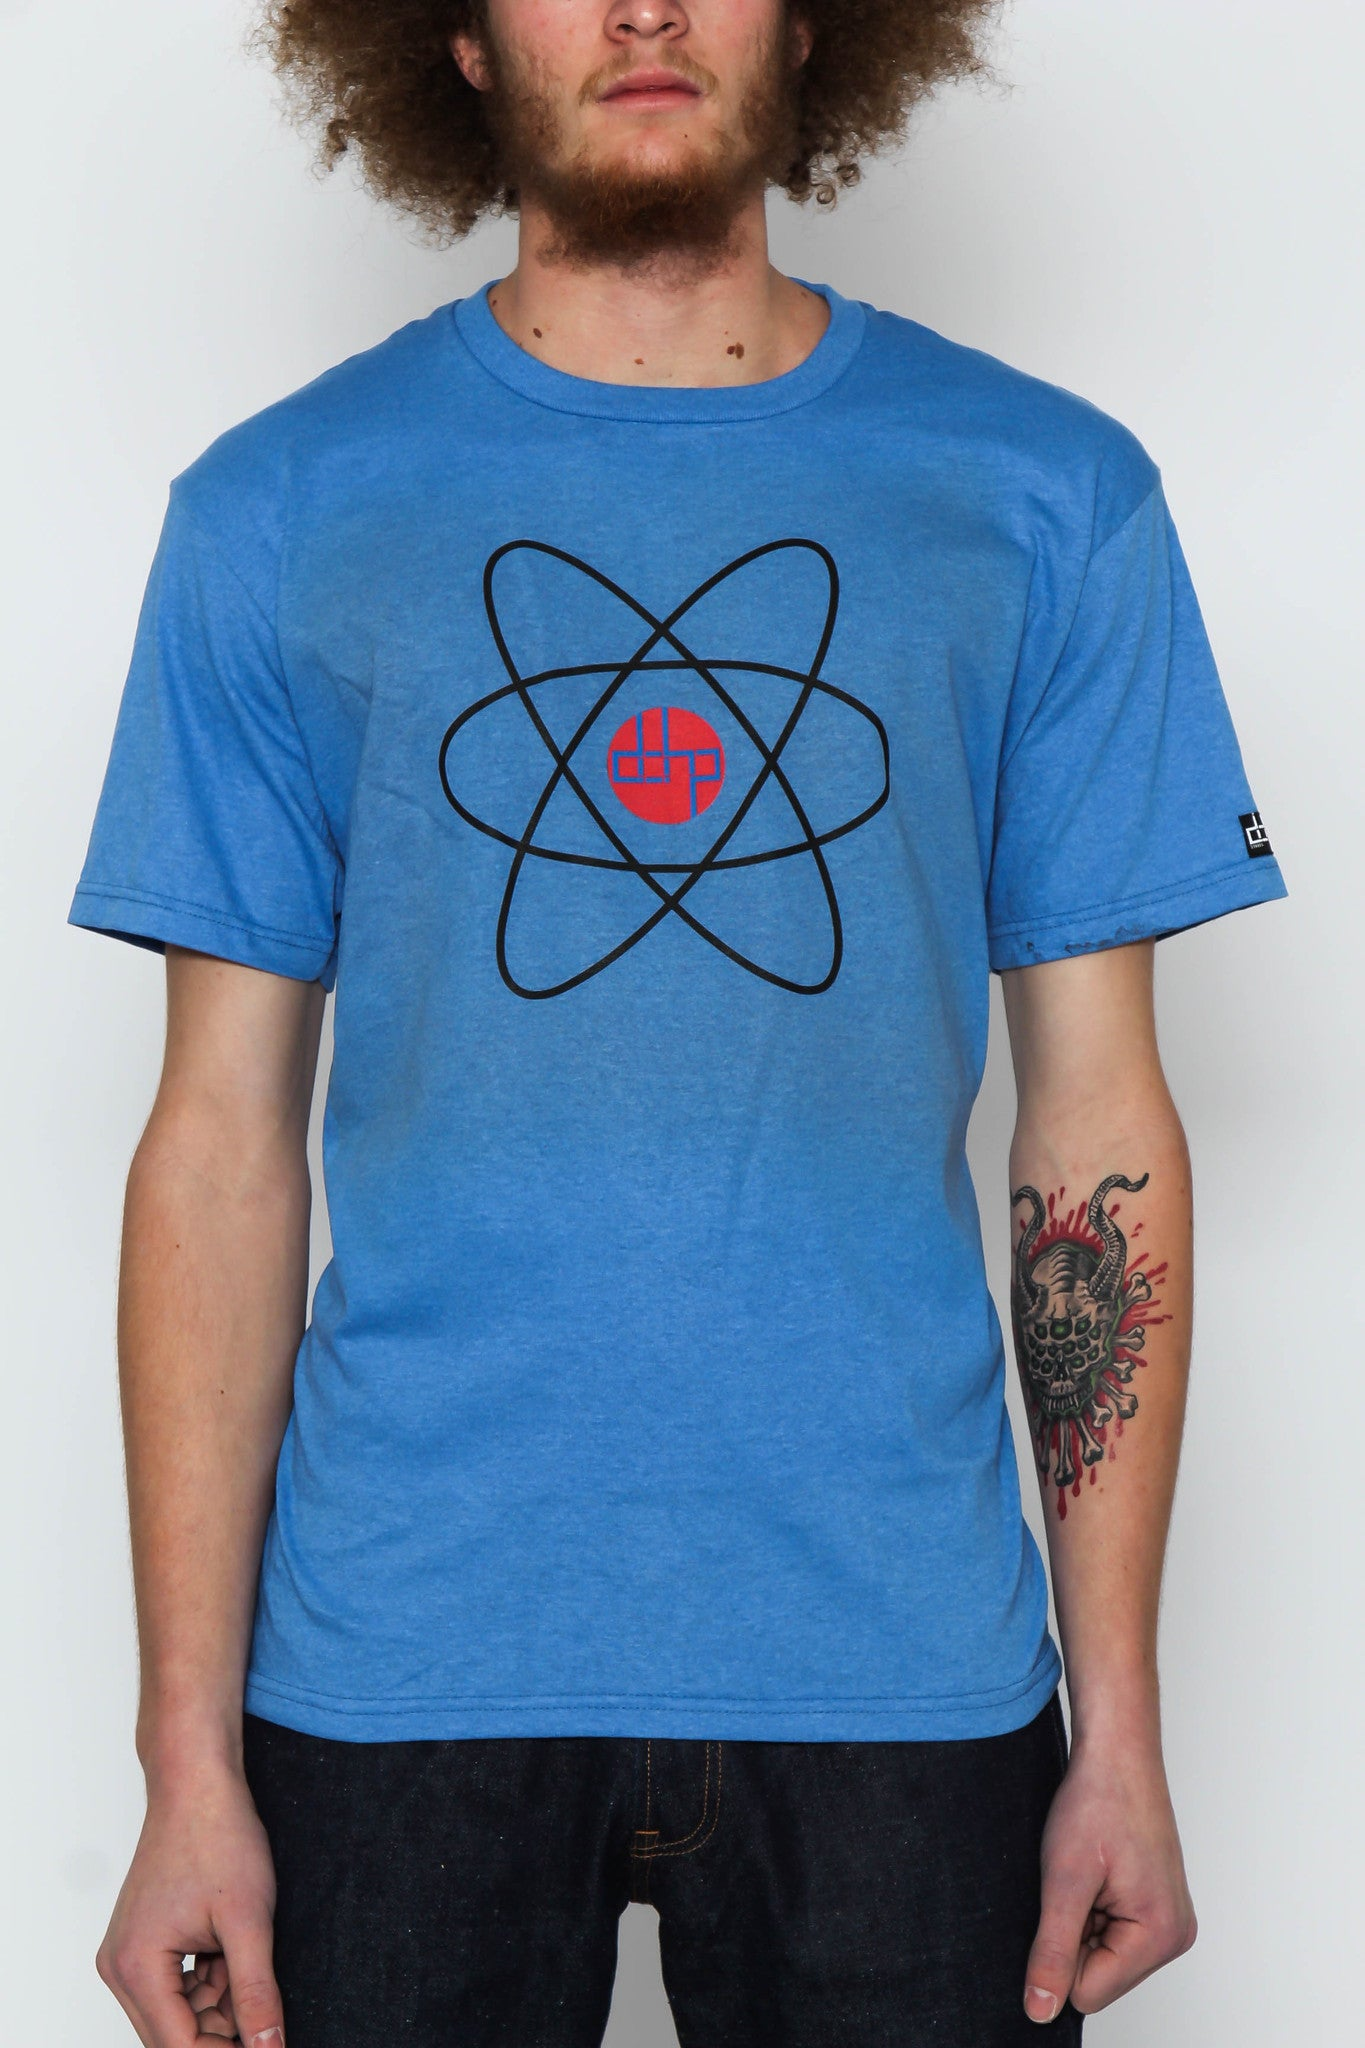 The Blue / Extra Small Homage to The Atom Tree-Shirt (New!): one of the Tree-Shirts by DOHP, get it now from the Decorate Our Home Planet Store! We plant 3 Trees for every item sold! - 1